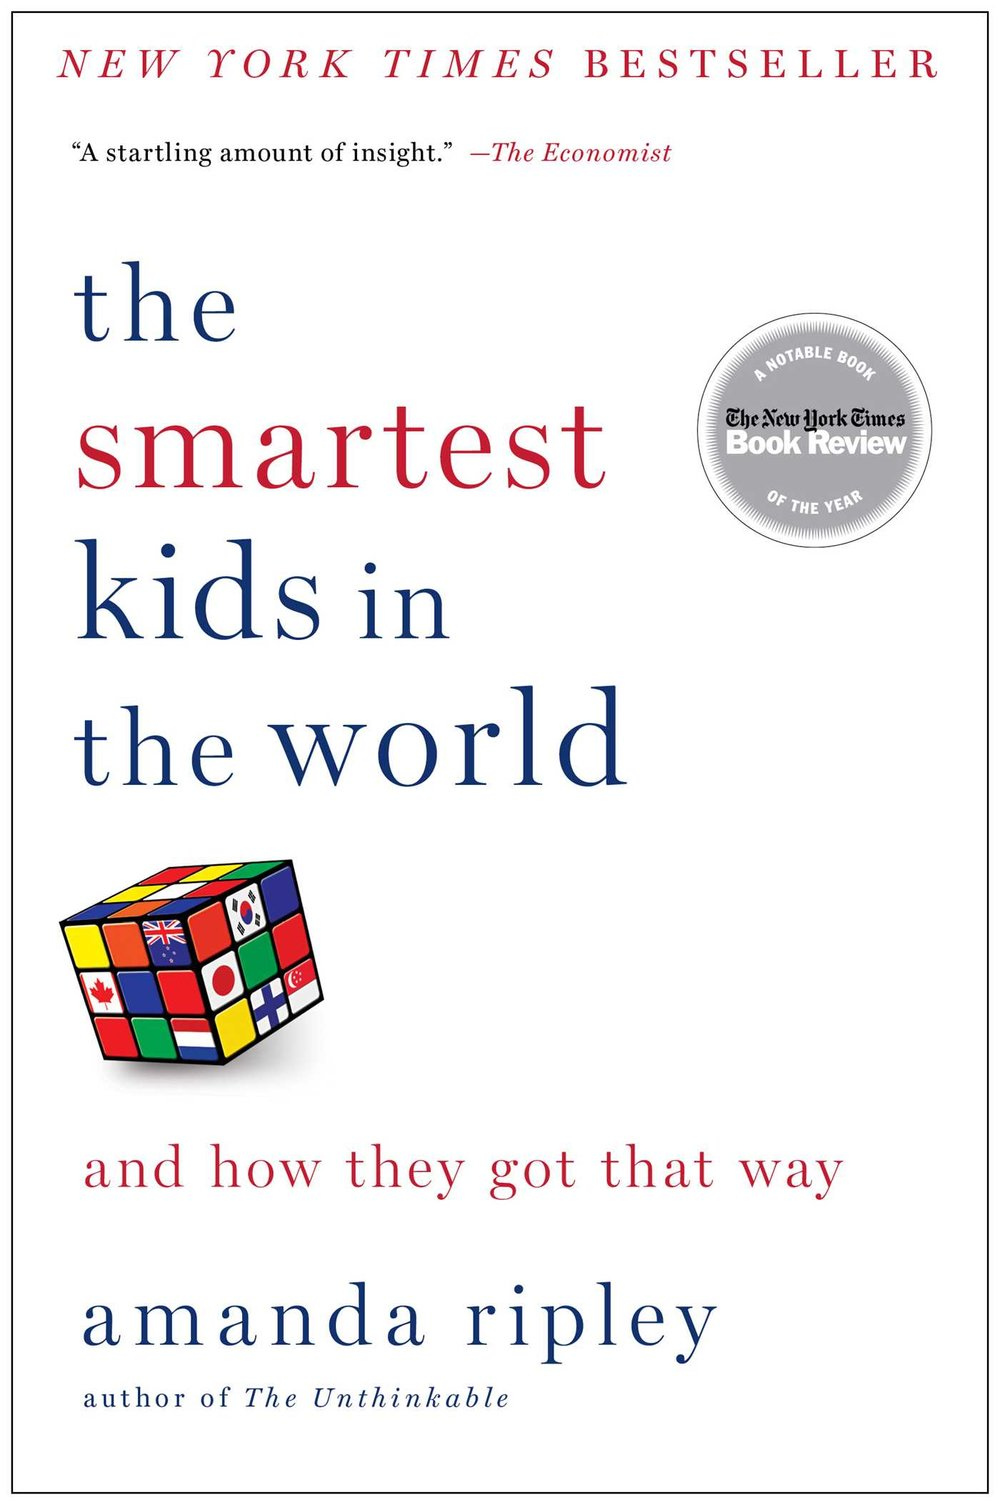 smartest-kids-in-the-world-9781451654431_hr.jpg